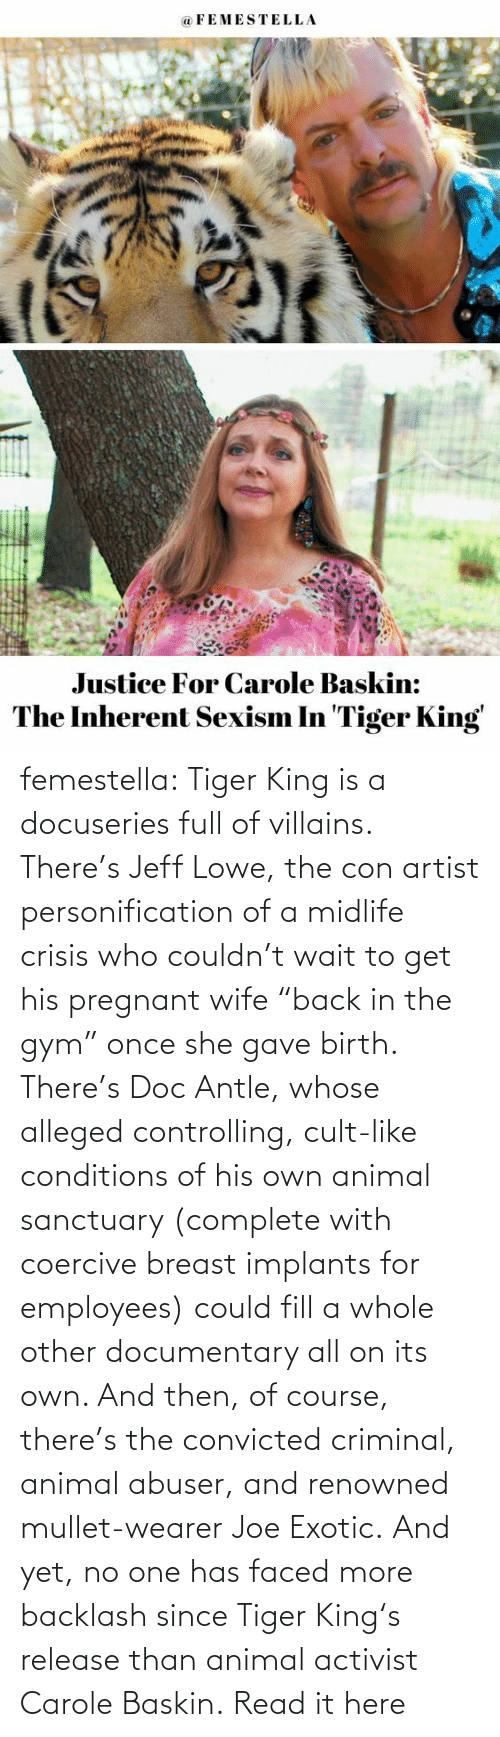 "Carole: femestella: Tiger King is a docuseries full of villains. There's Jeff Lowe, the con artist personification of a midlife crisis who couldn't wait to get his pregnant wife ""back in the gym"" once she gave birth. There's Doc Antle, whose alleged controlling, cult-like conditions of his own animal sanctuary (complete with coercive breast implants for employees) could fill a whole other documentary all on its own. And then, of course, there's the convicted criminal, animal abuser, and renowned mullet-wearer Joe Exotic. And yet, no one has faced more backlash since Tiger King's release than animal activist Carole Baskin. Read it here"